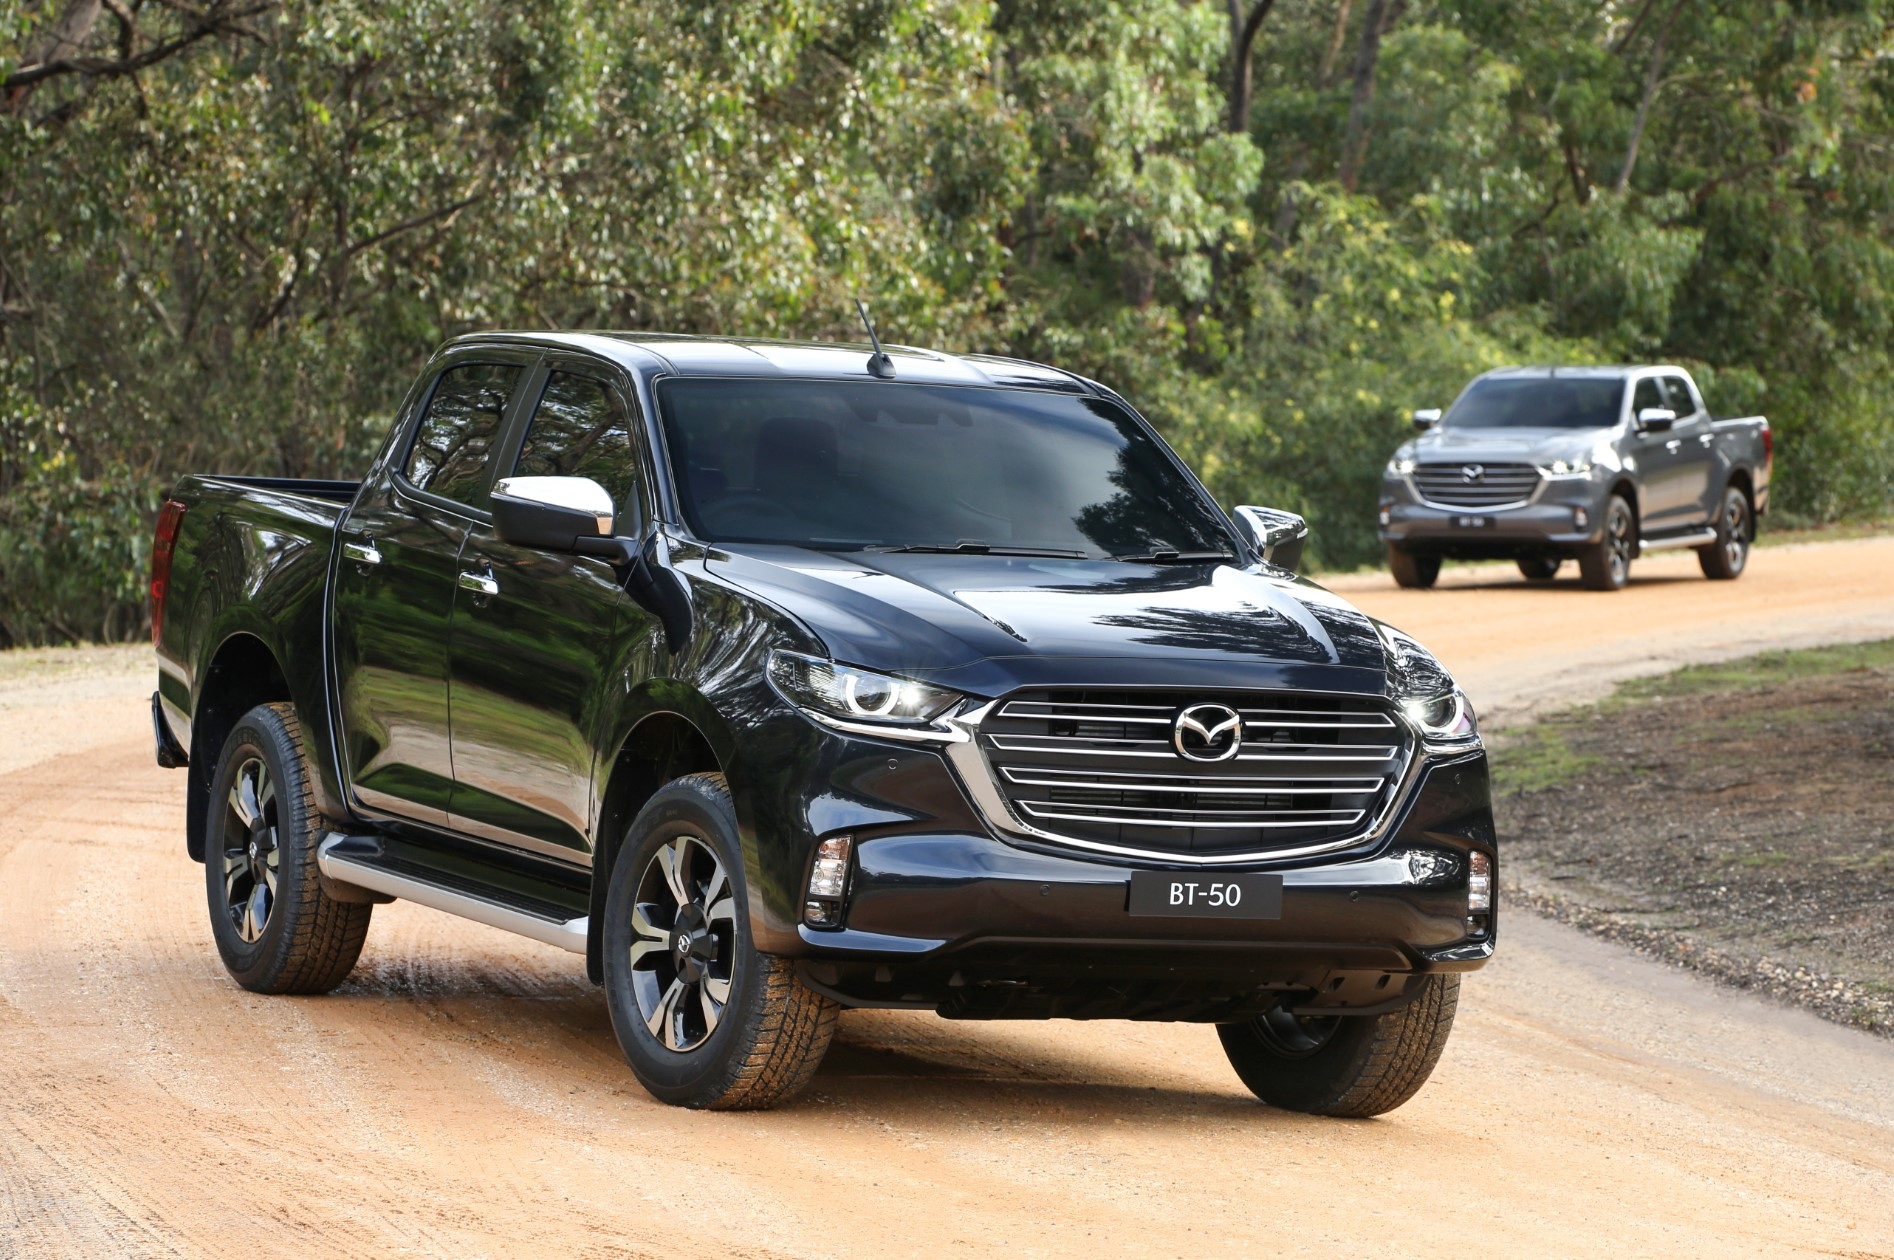 2021 Mazda Bt 50 Pricing And Specs Revealed Practical Motoring